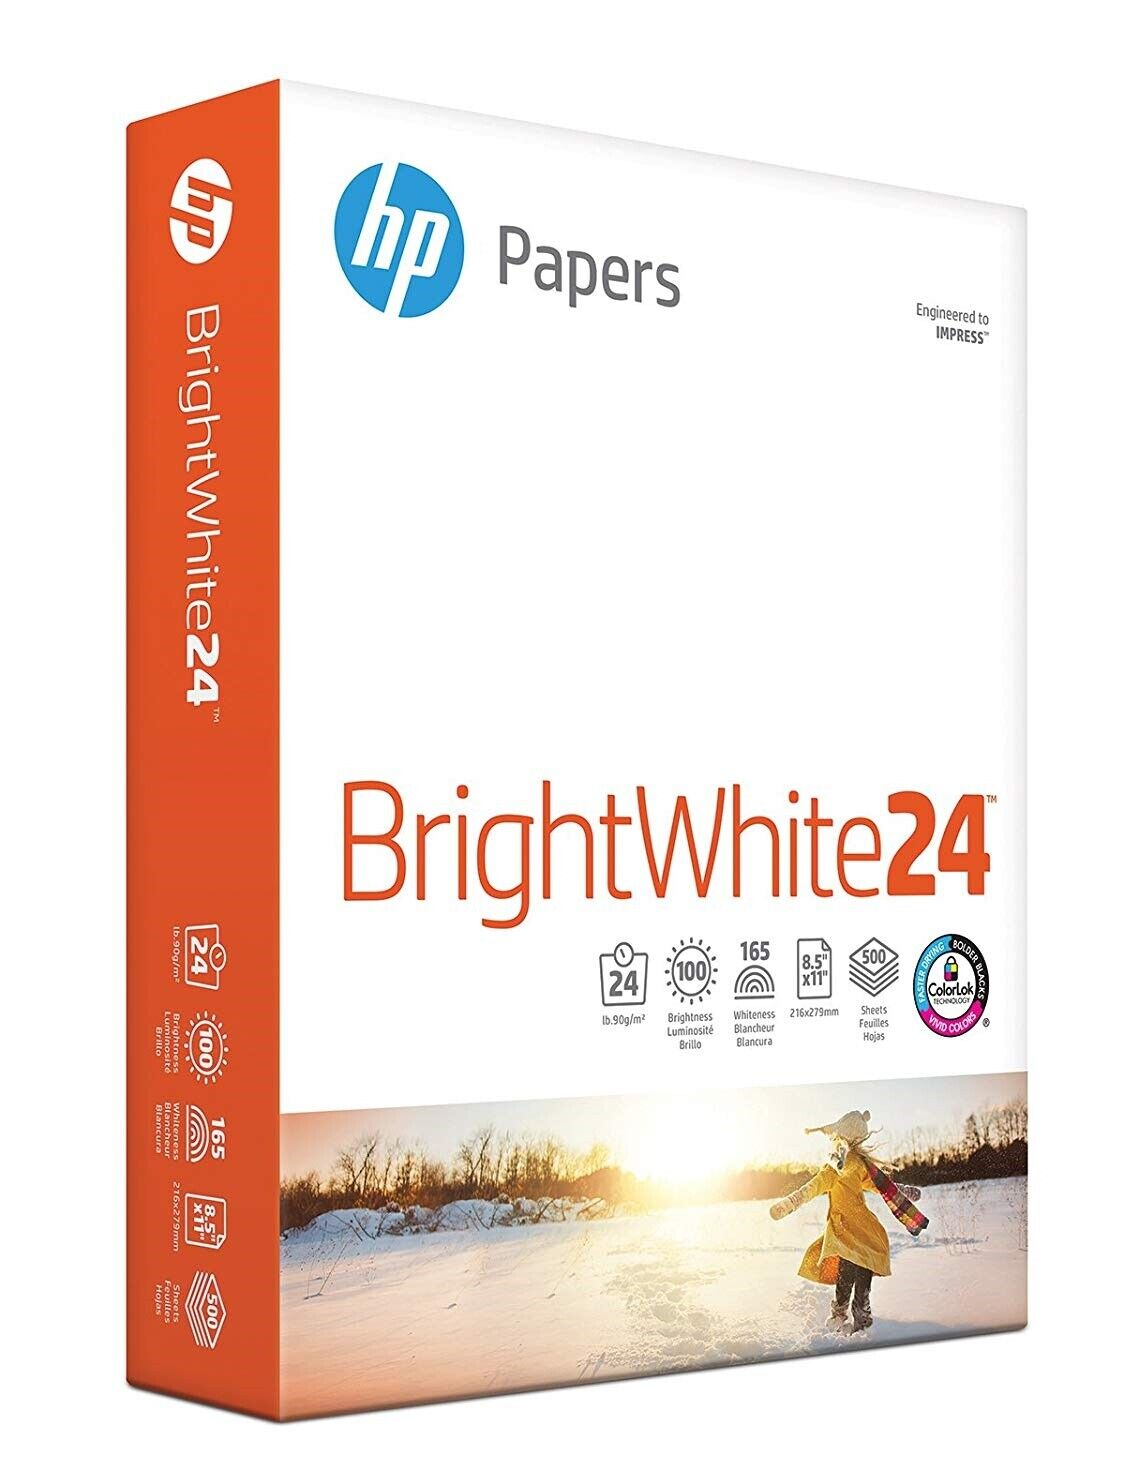 HP Printer Paper BrightWhite24 8.5 x 11 Letter 24lb 97 Brigh